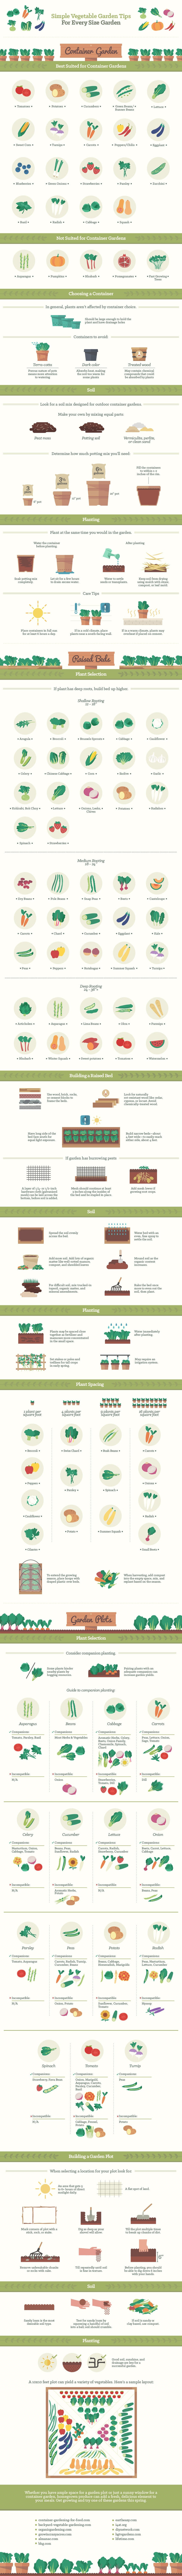 This Infographic Teaches You How to Grow Dozens of Vegetables